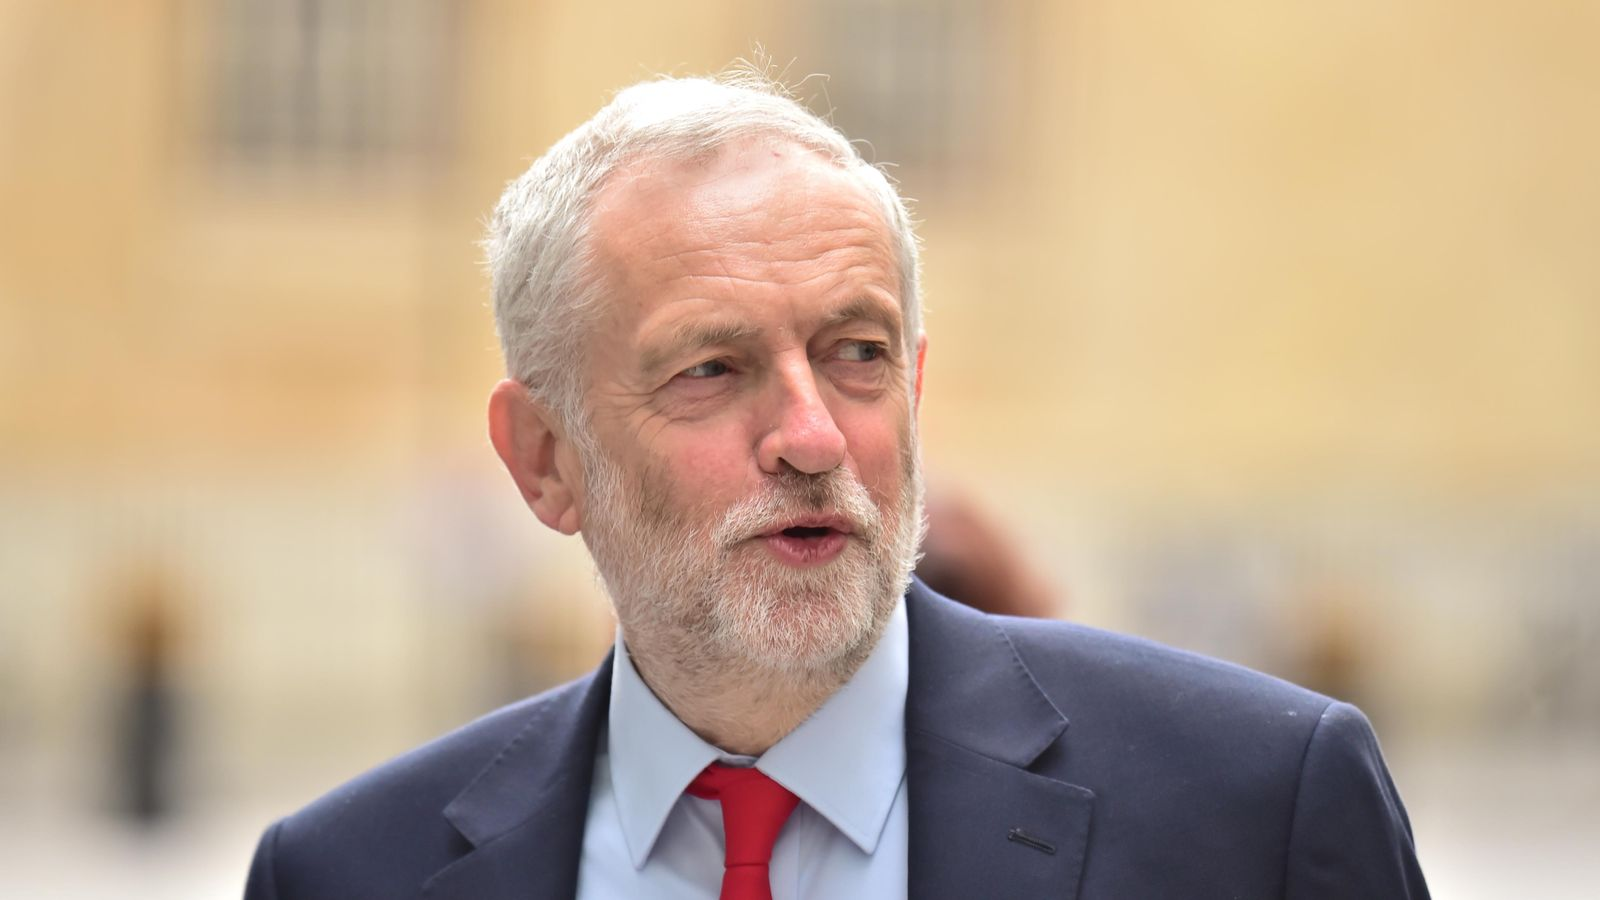 Labour leader Jeremy Corbyn says could suspend Syria air strikes if elected